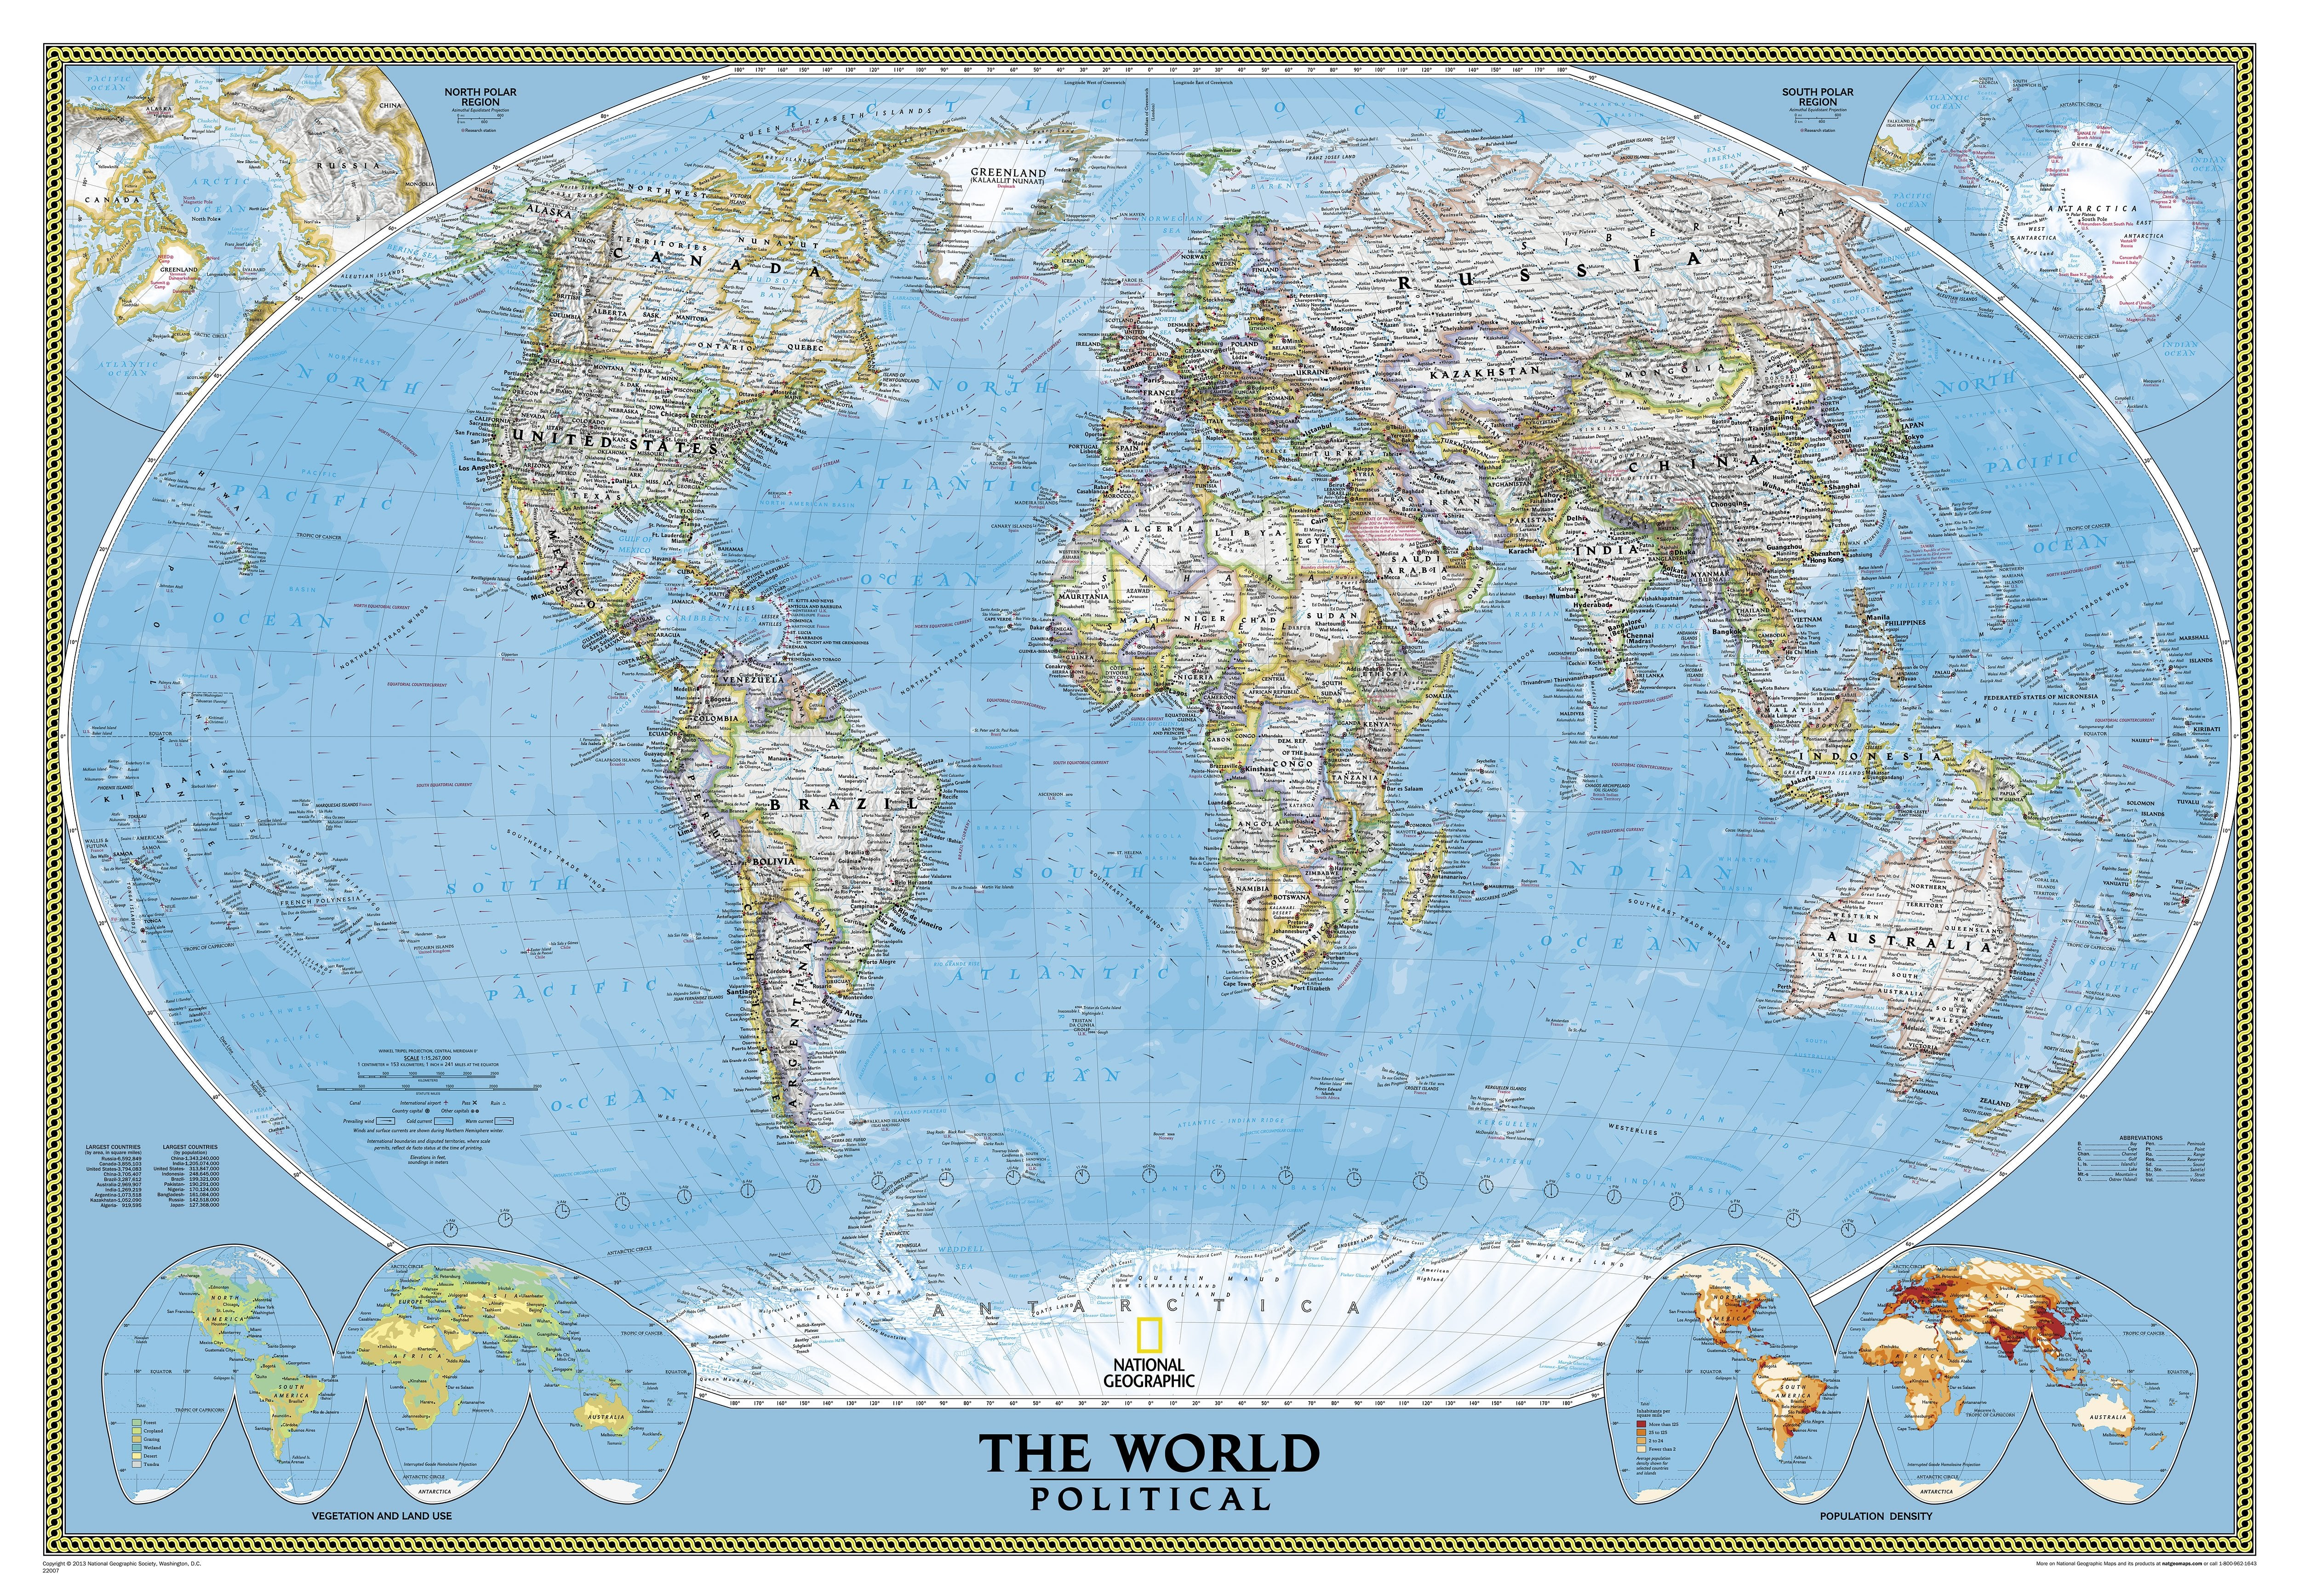 Political World Map Super Large Size World Maps - National geographic world maps for sale